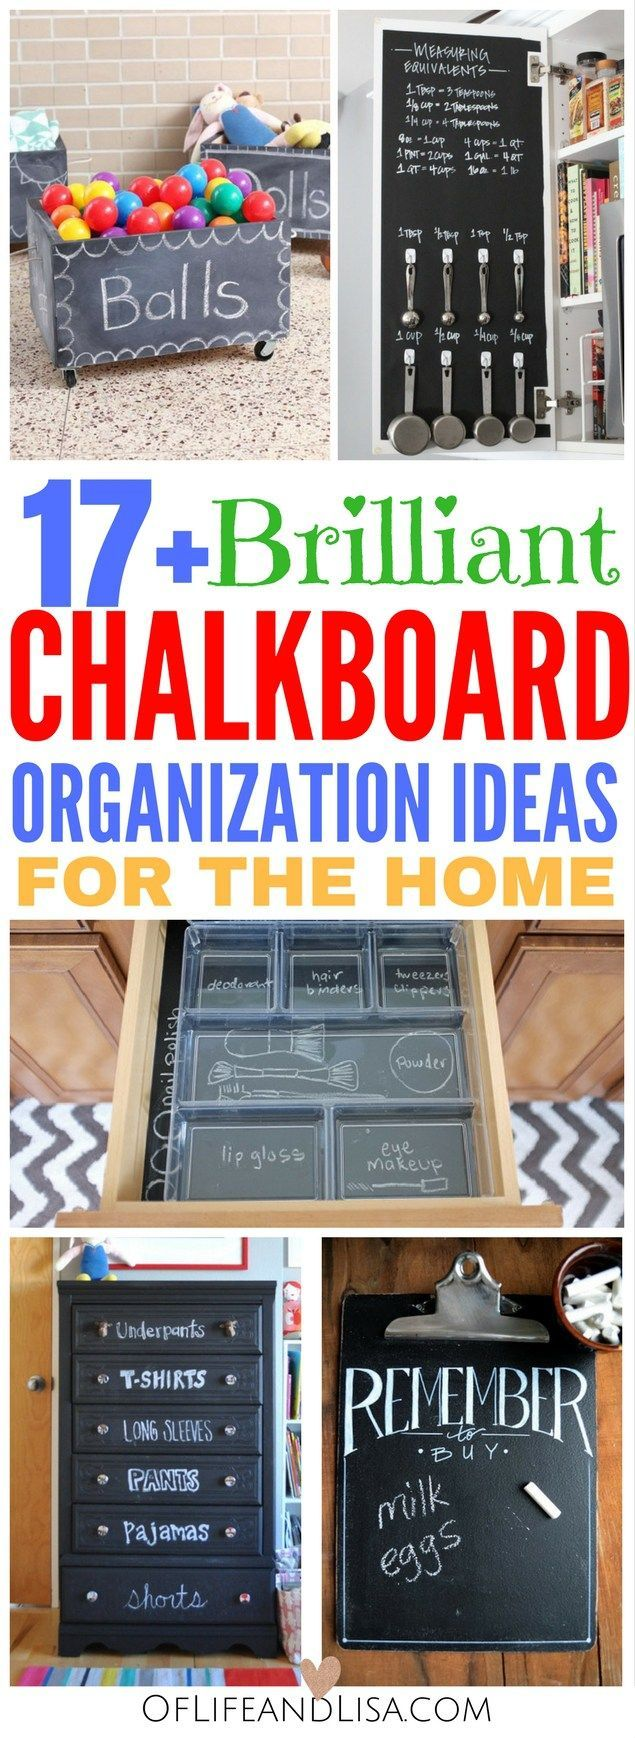 These chalkboard organization ideas are really sweet! I can not wait to try some of these.